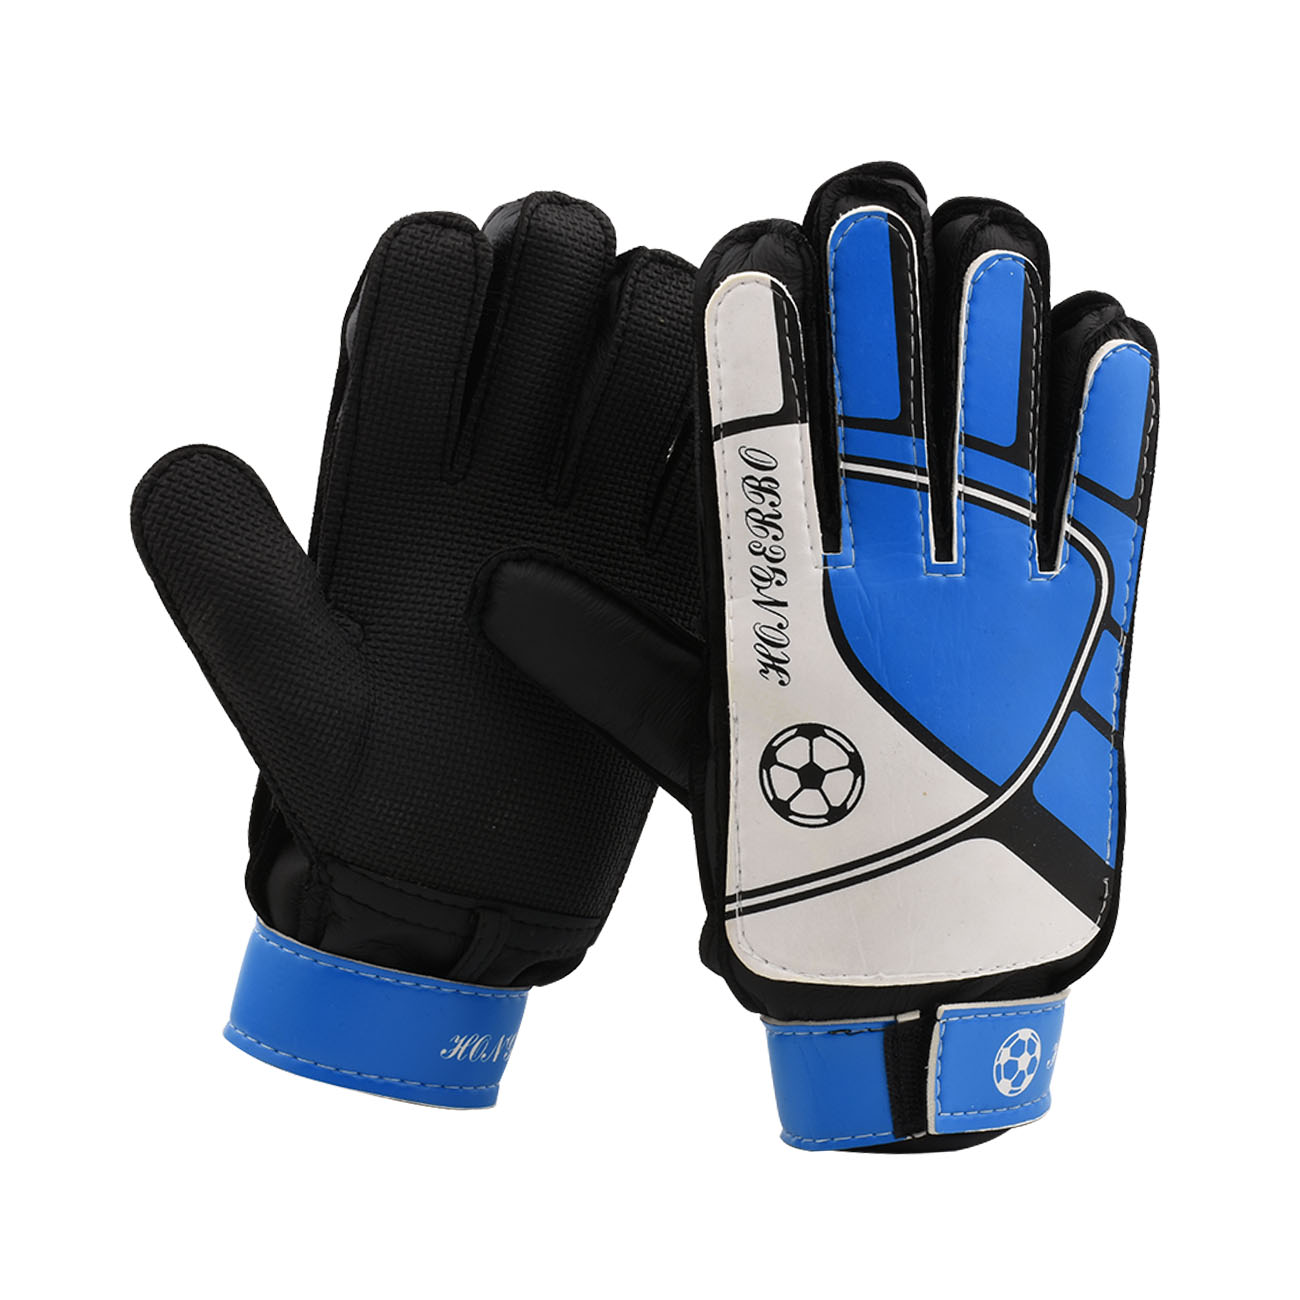 Professional Football Goalkeeper Gloves Adults Children Finger Protector Kids Soccer Goalie Gloves Latex Strong Finger Save Gear